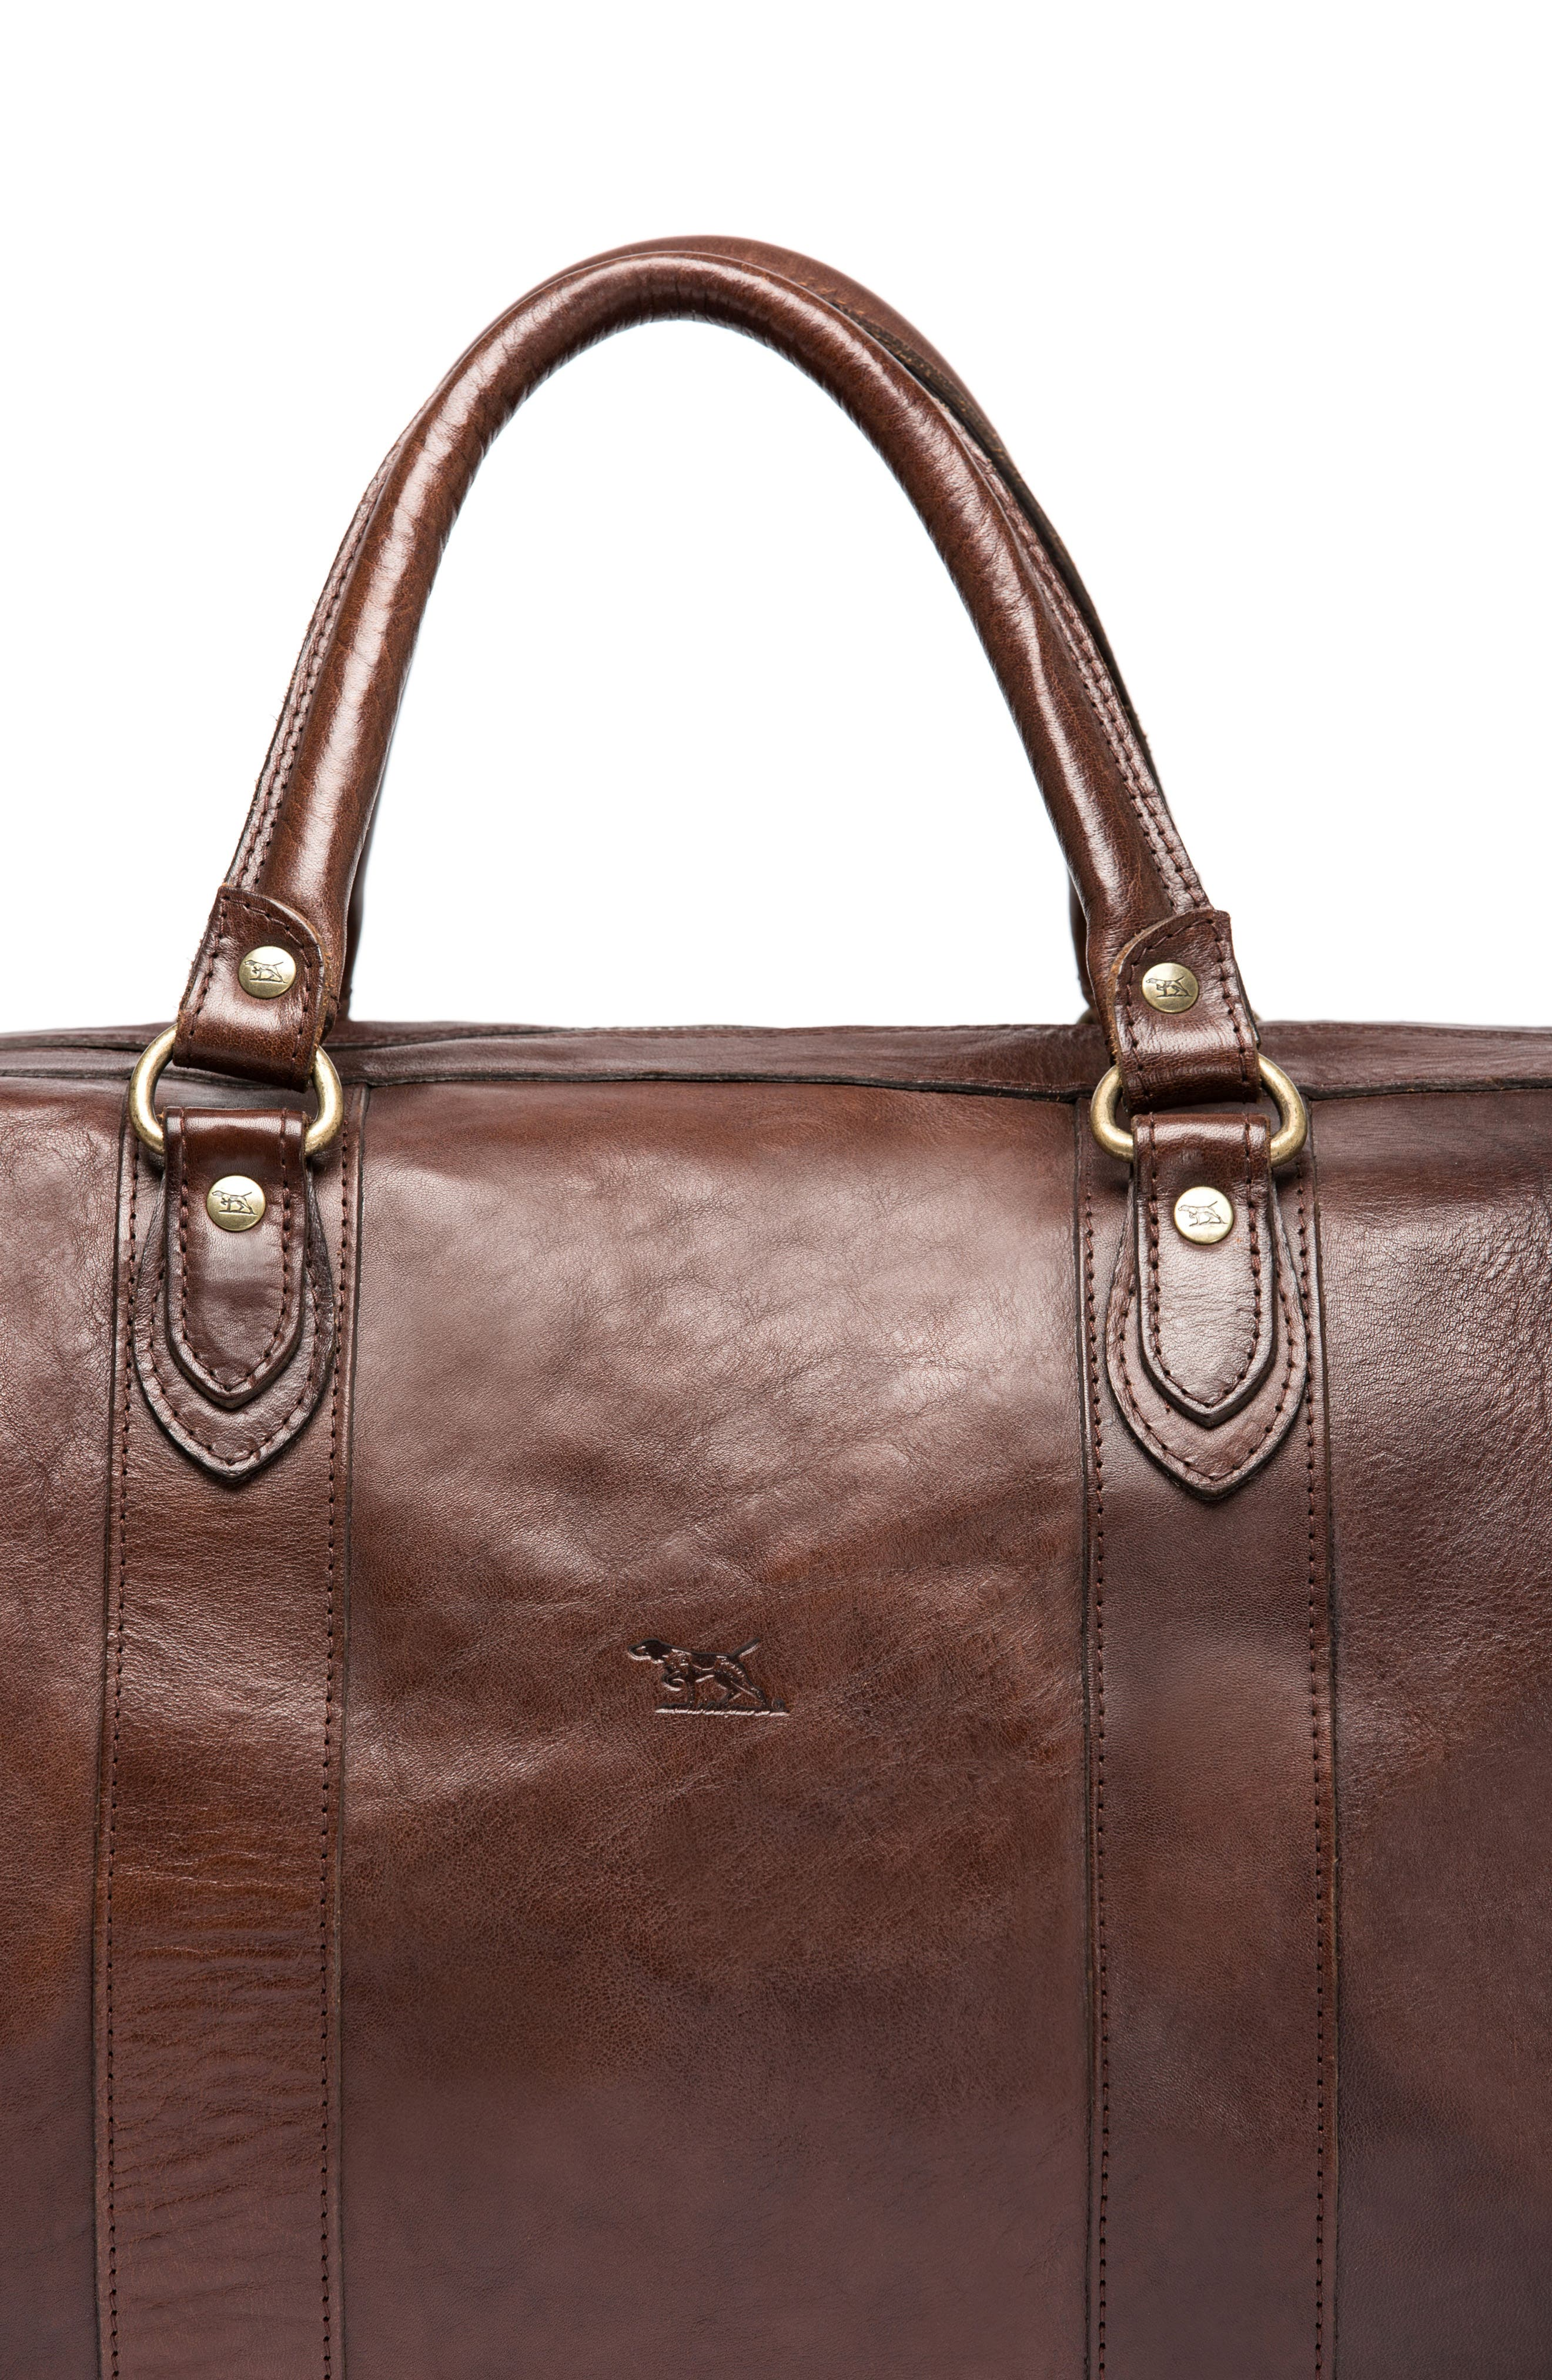 Normanby Duffel Bag,                             Alternate thumbnail 4, color,                             Cocoa